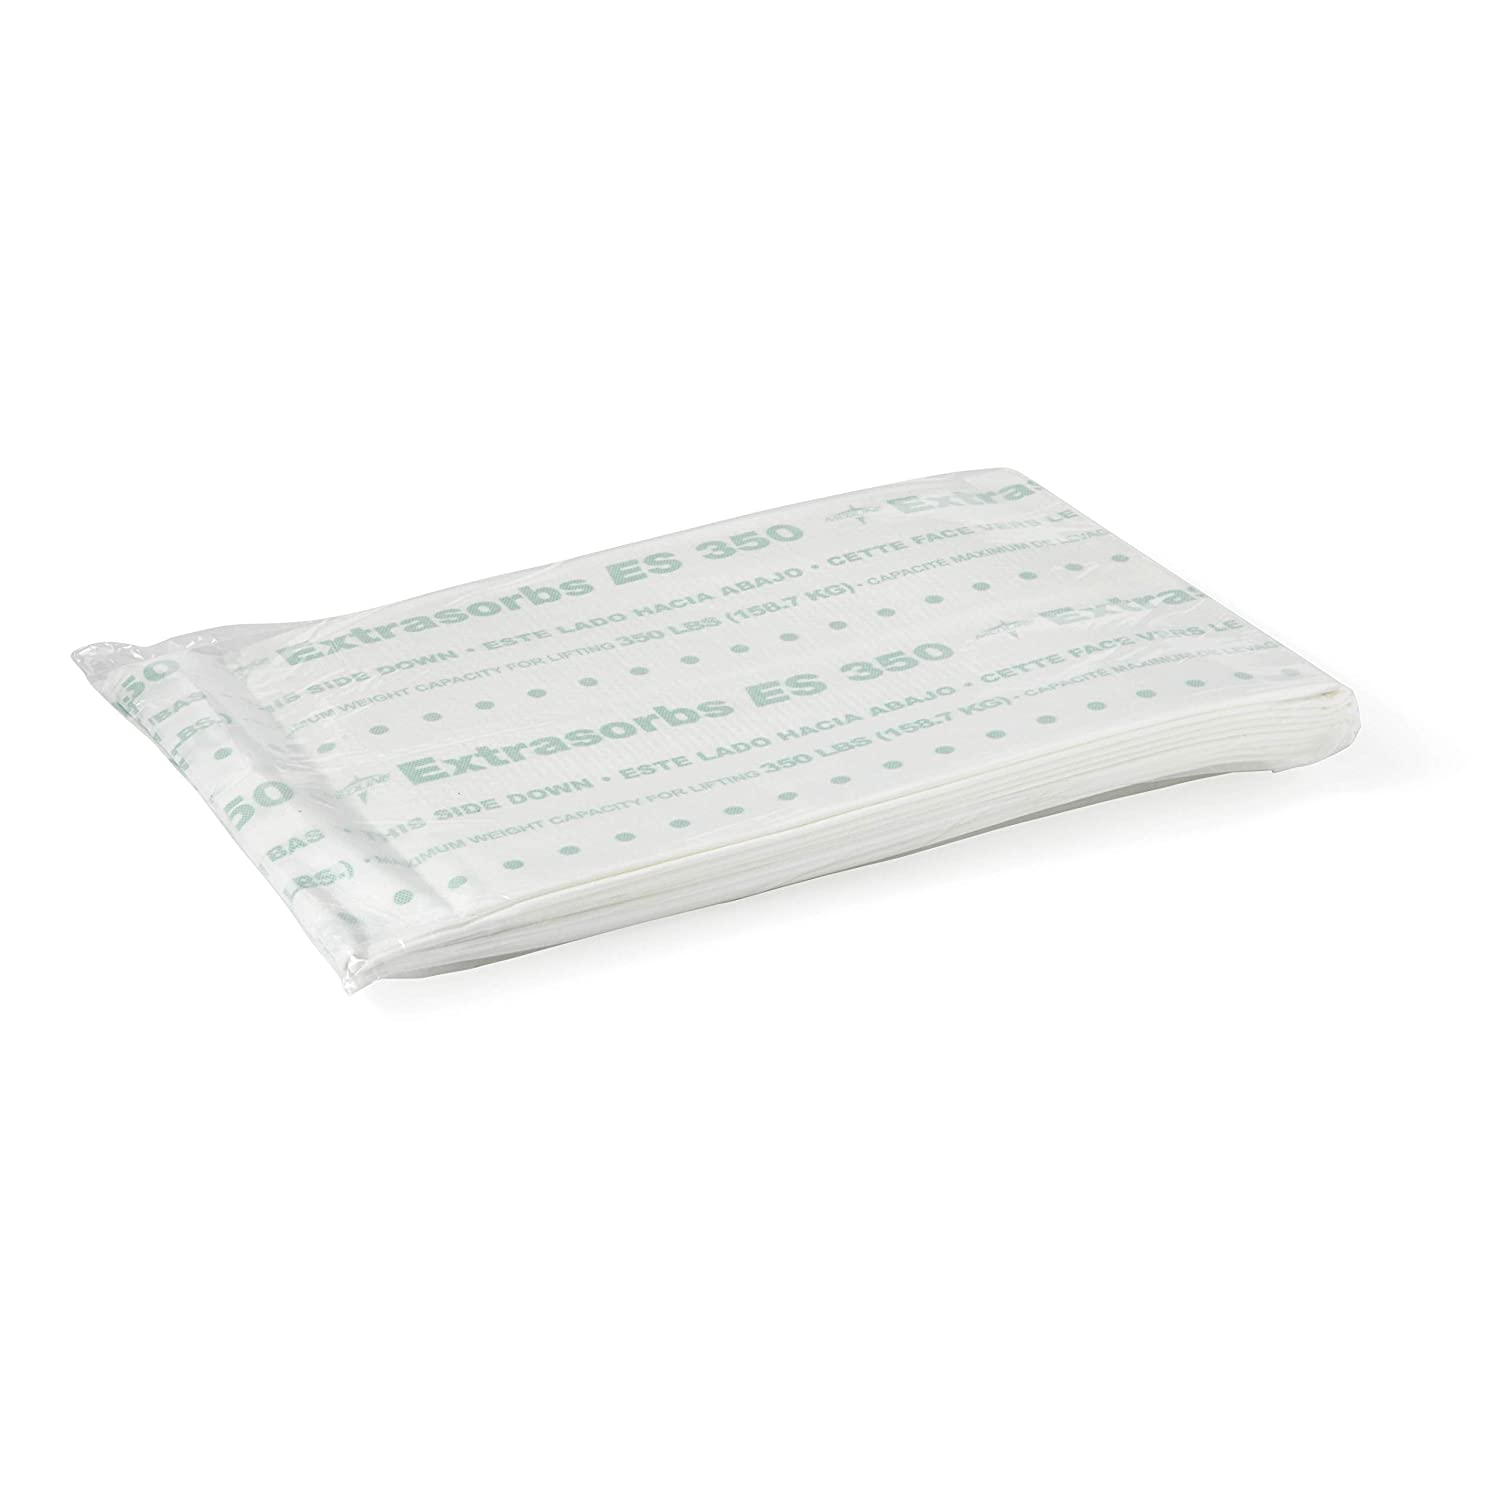 """Medline - EXTSB3036A350 Extrasorbs Extra Strong Disposable Underpads, Super Absorbent Dry Pads, 30"""" x 36"""", Case of 70: Incontinence Bedding Protectors: Industrial & Scientific"""